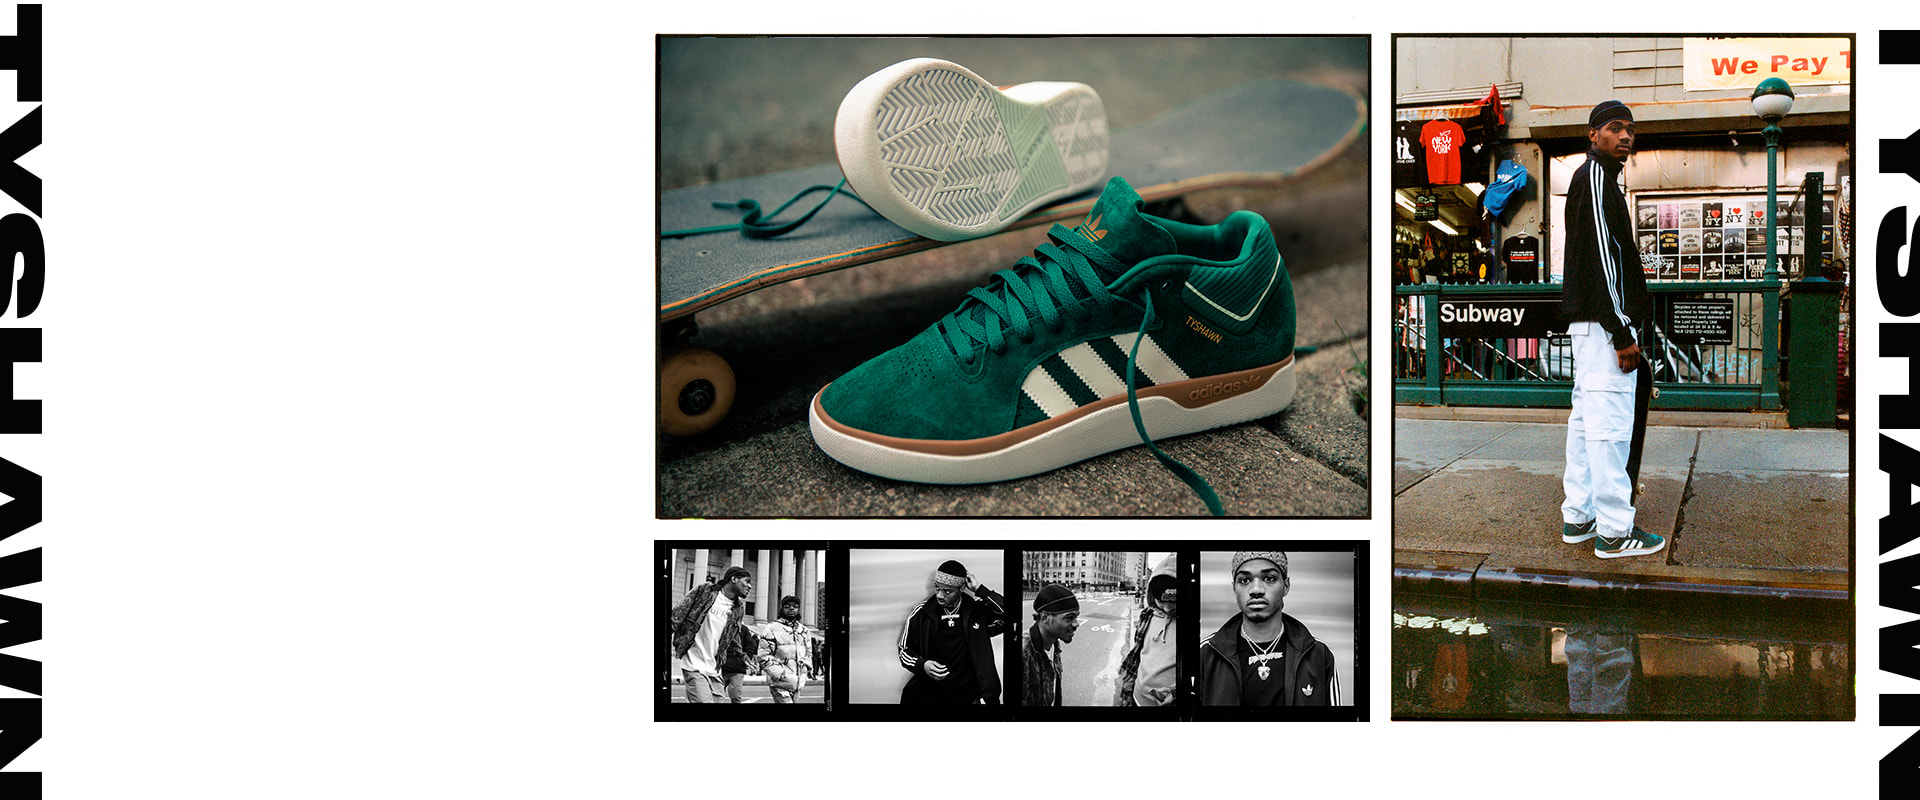 57688e0f38d adidas Skateboarding Shoes & Apparel | adidas US